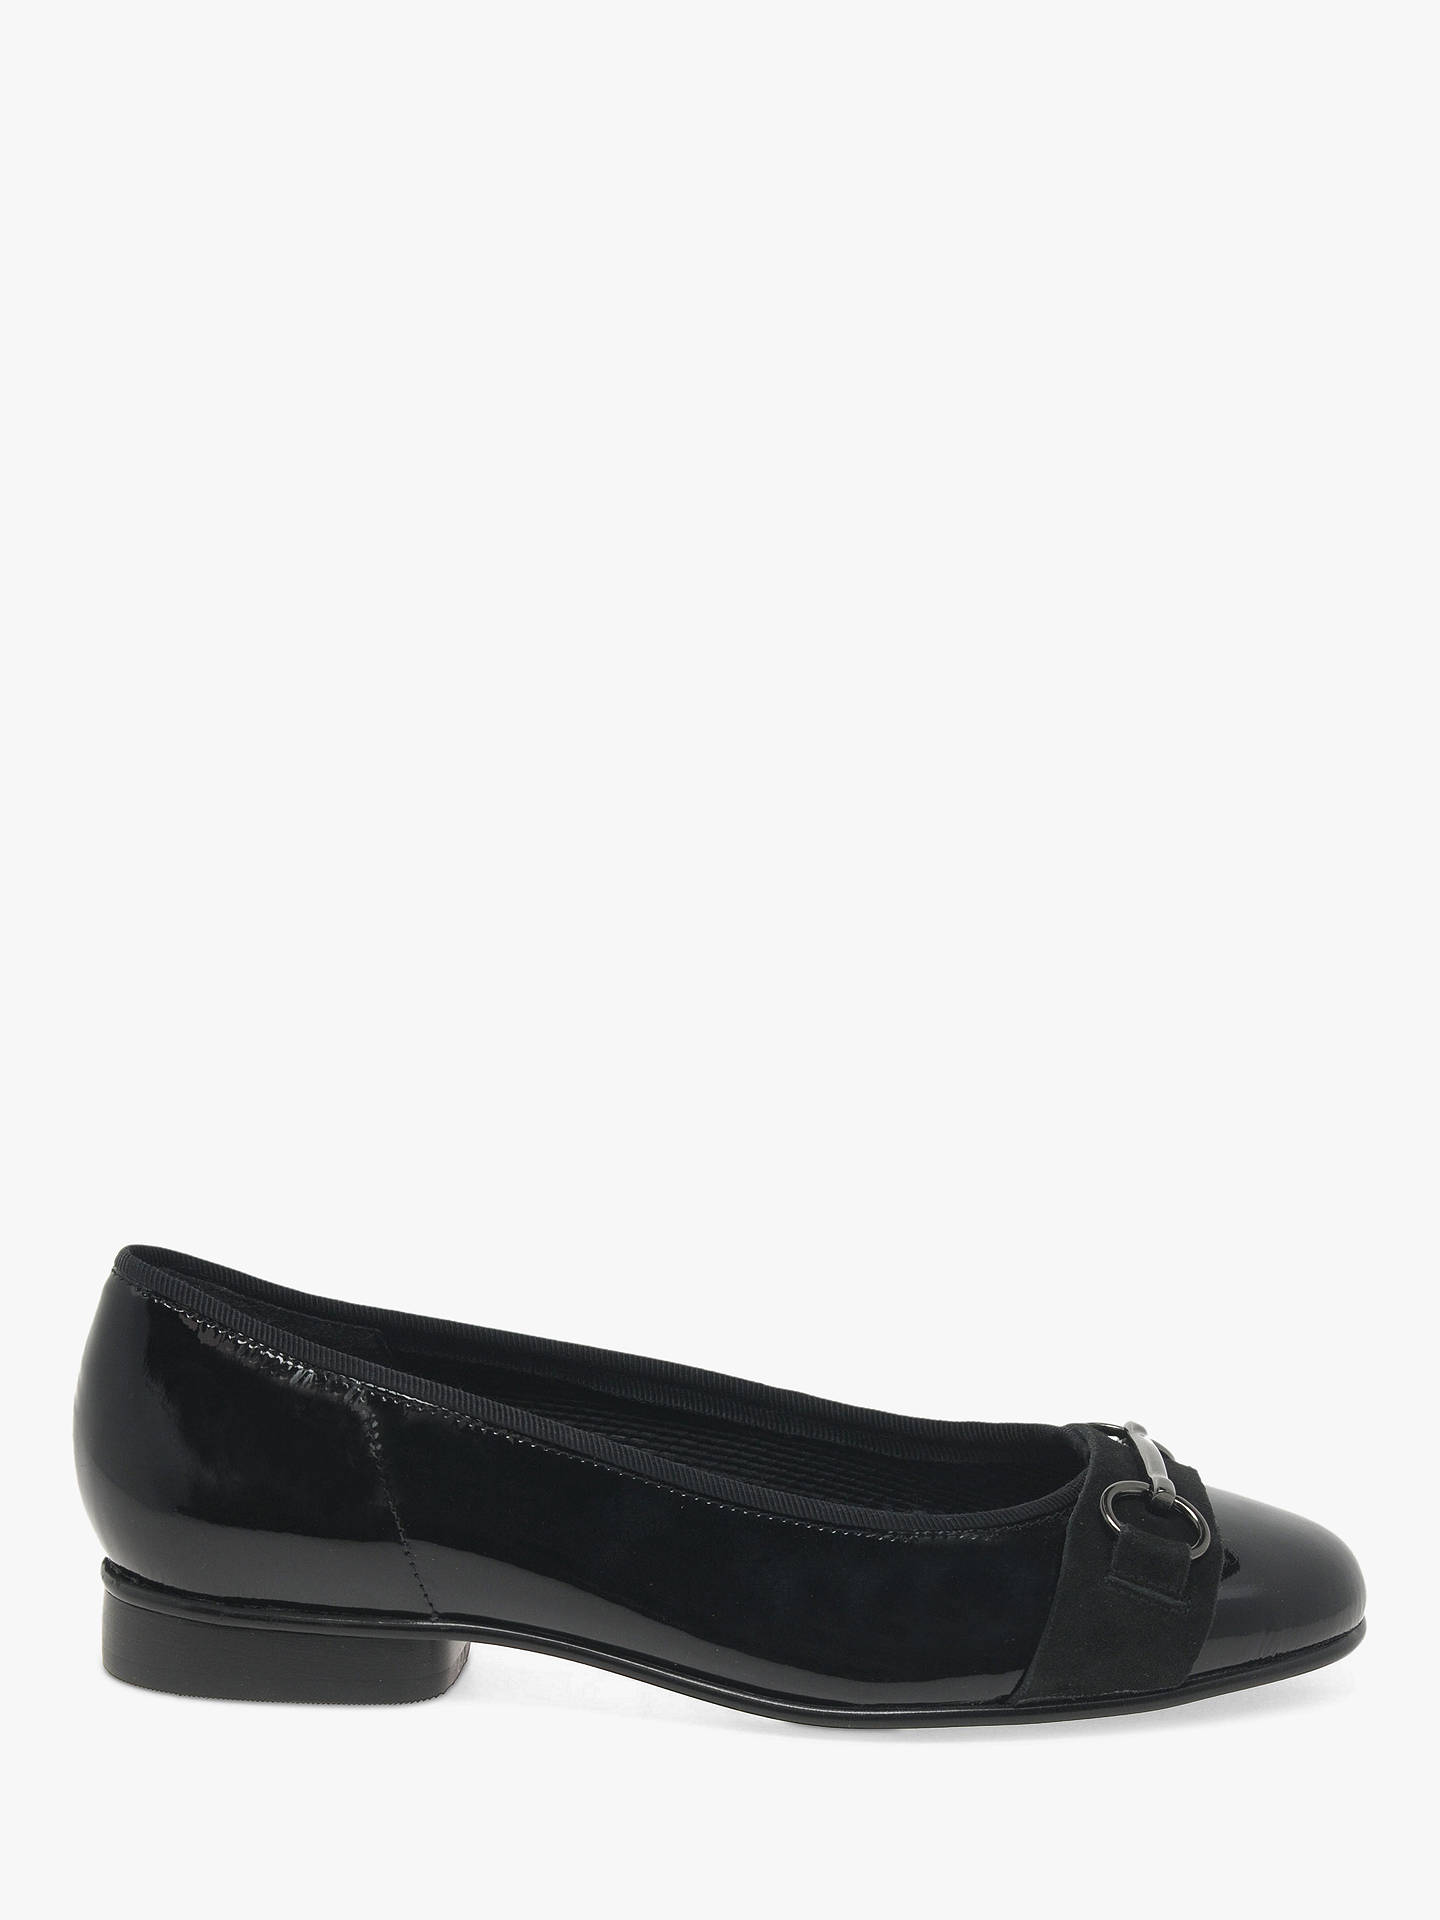 Buy Gabor Ample Leather Ballet Pumps, Black, 3 Online at johnlewis.com